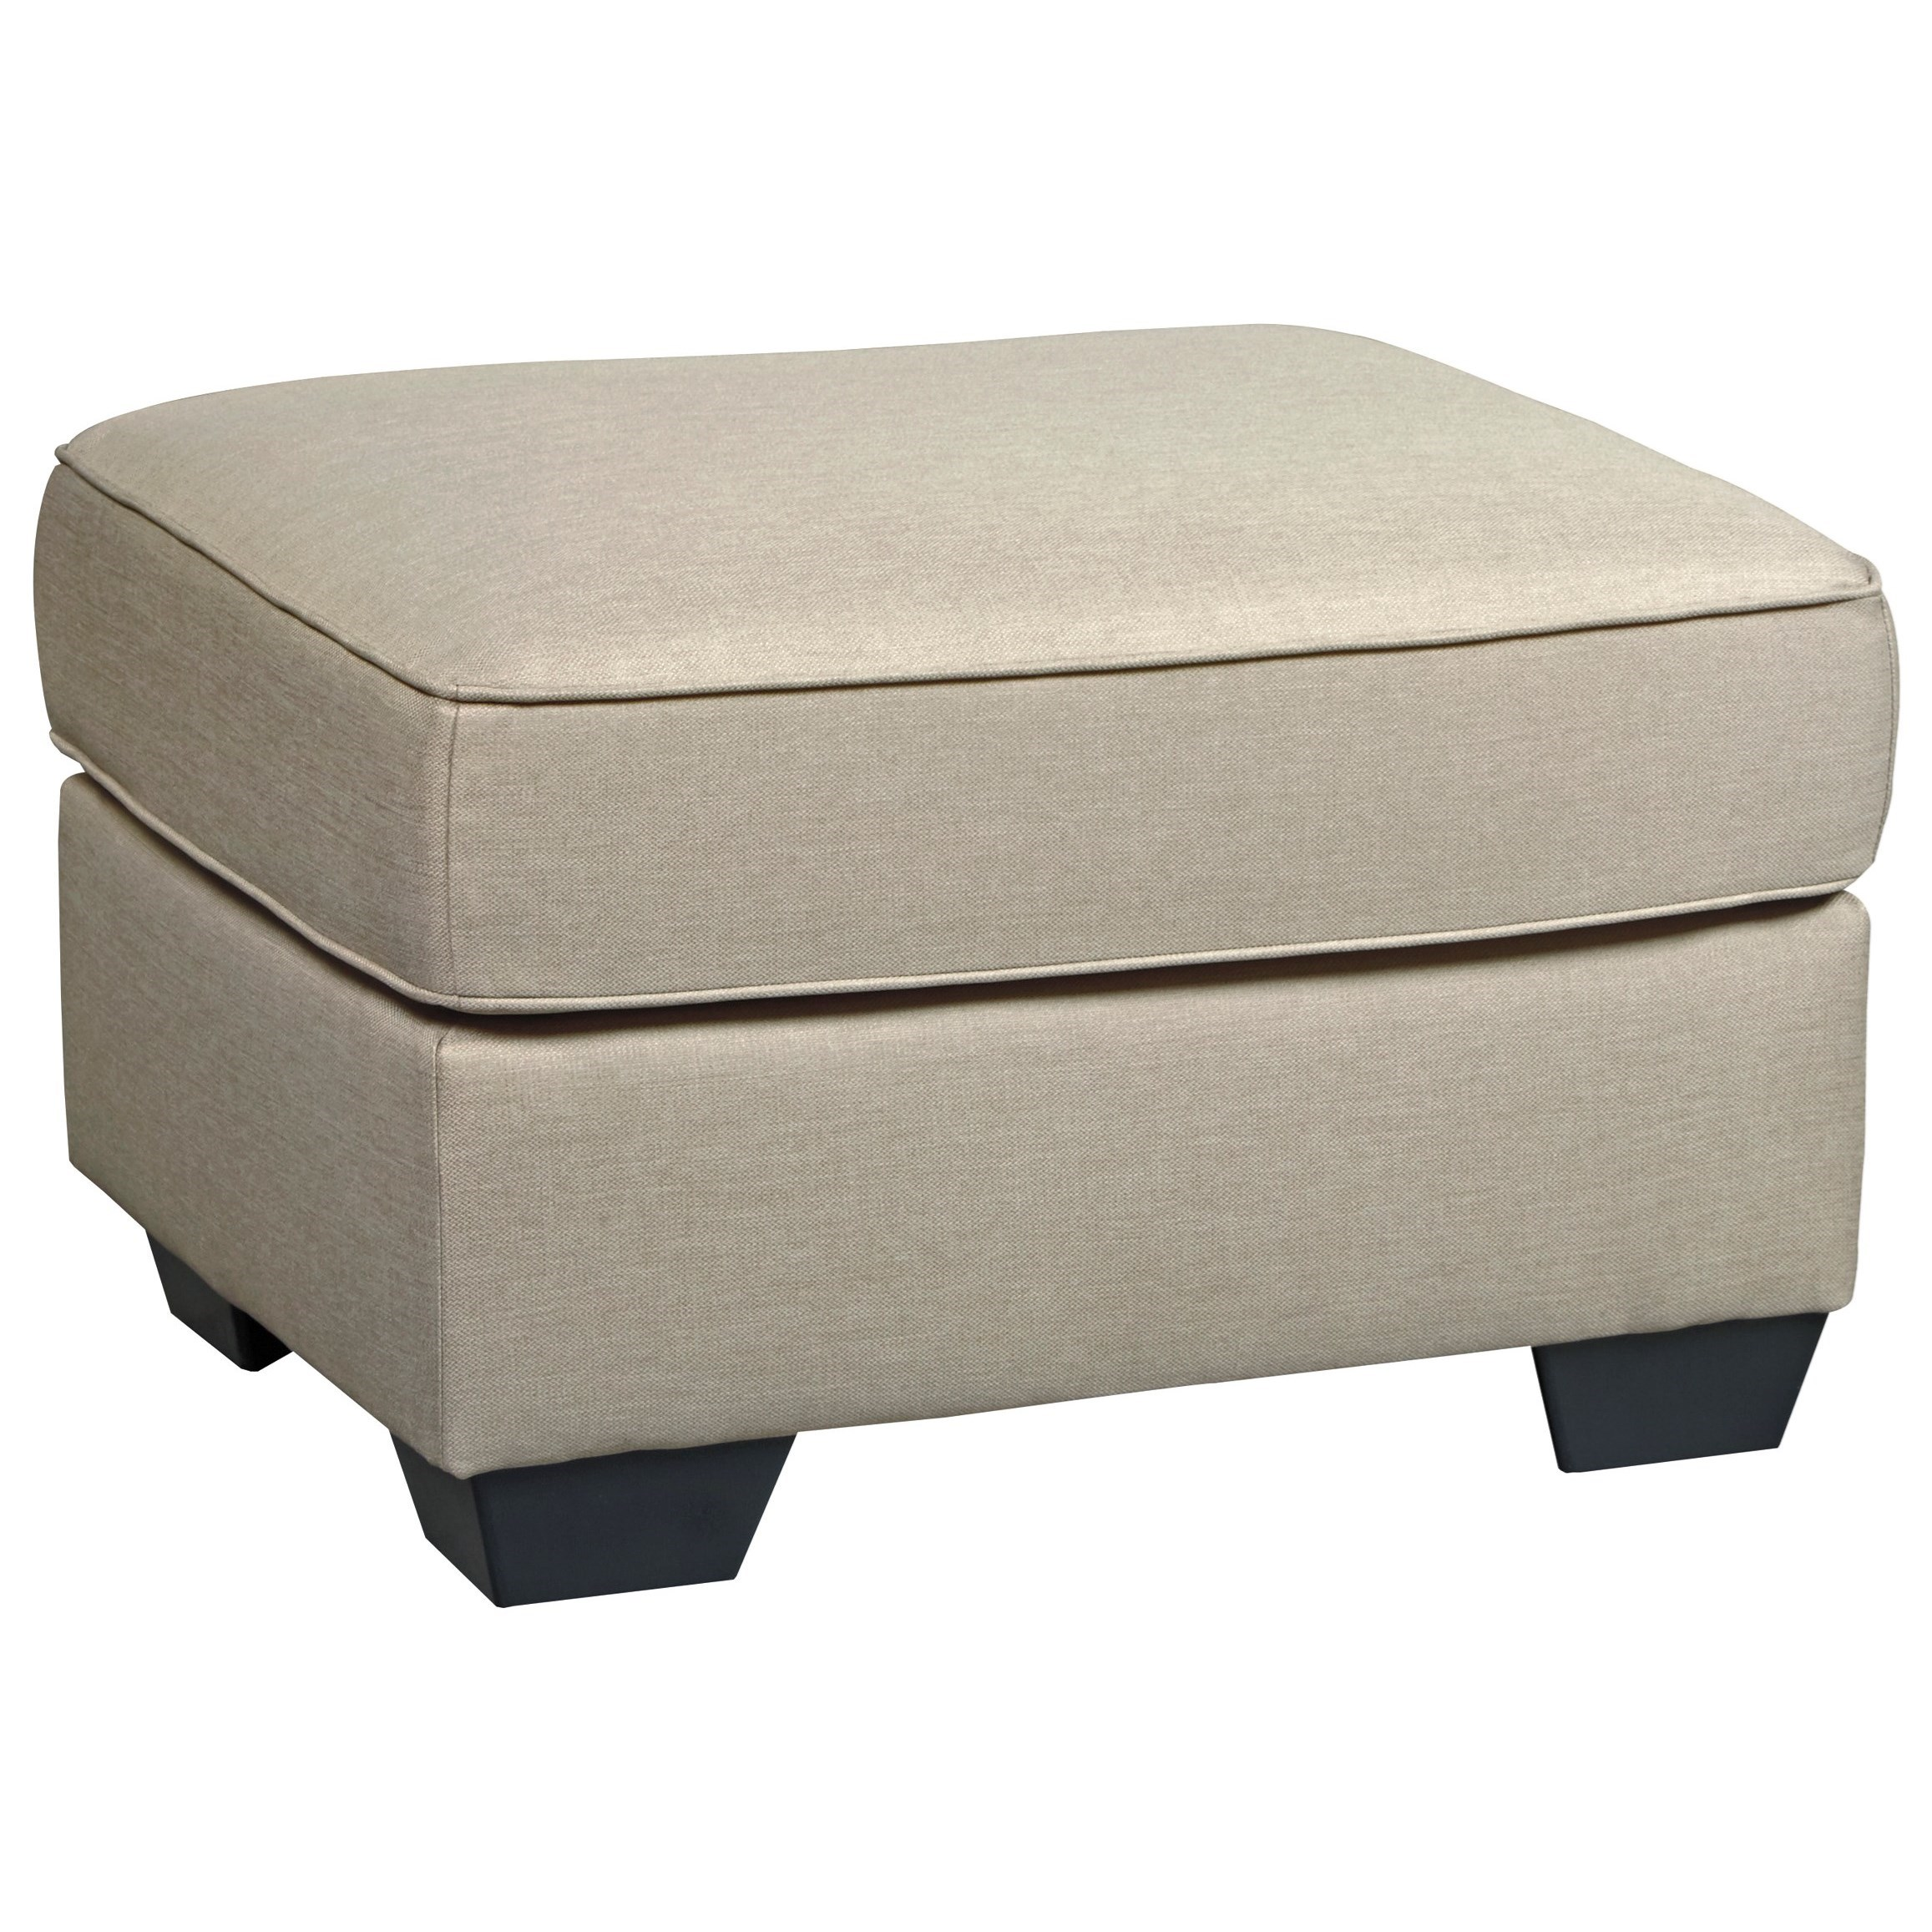 Benchcraft Calicho Ottoman - Item Number: 9120314